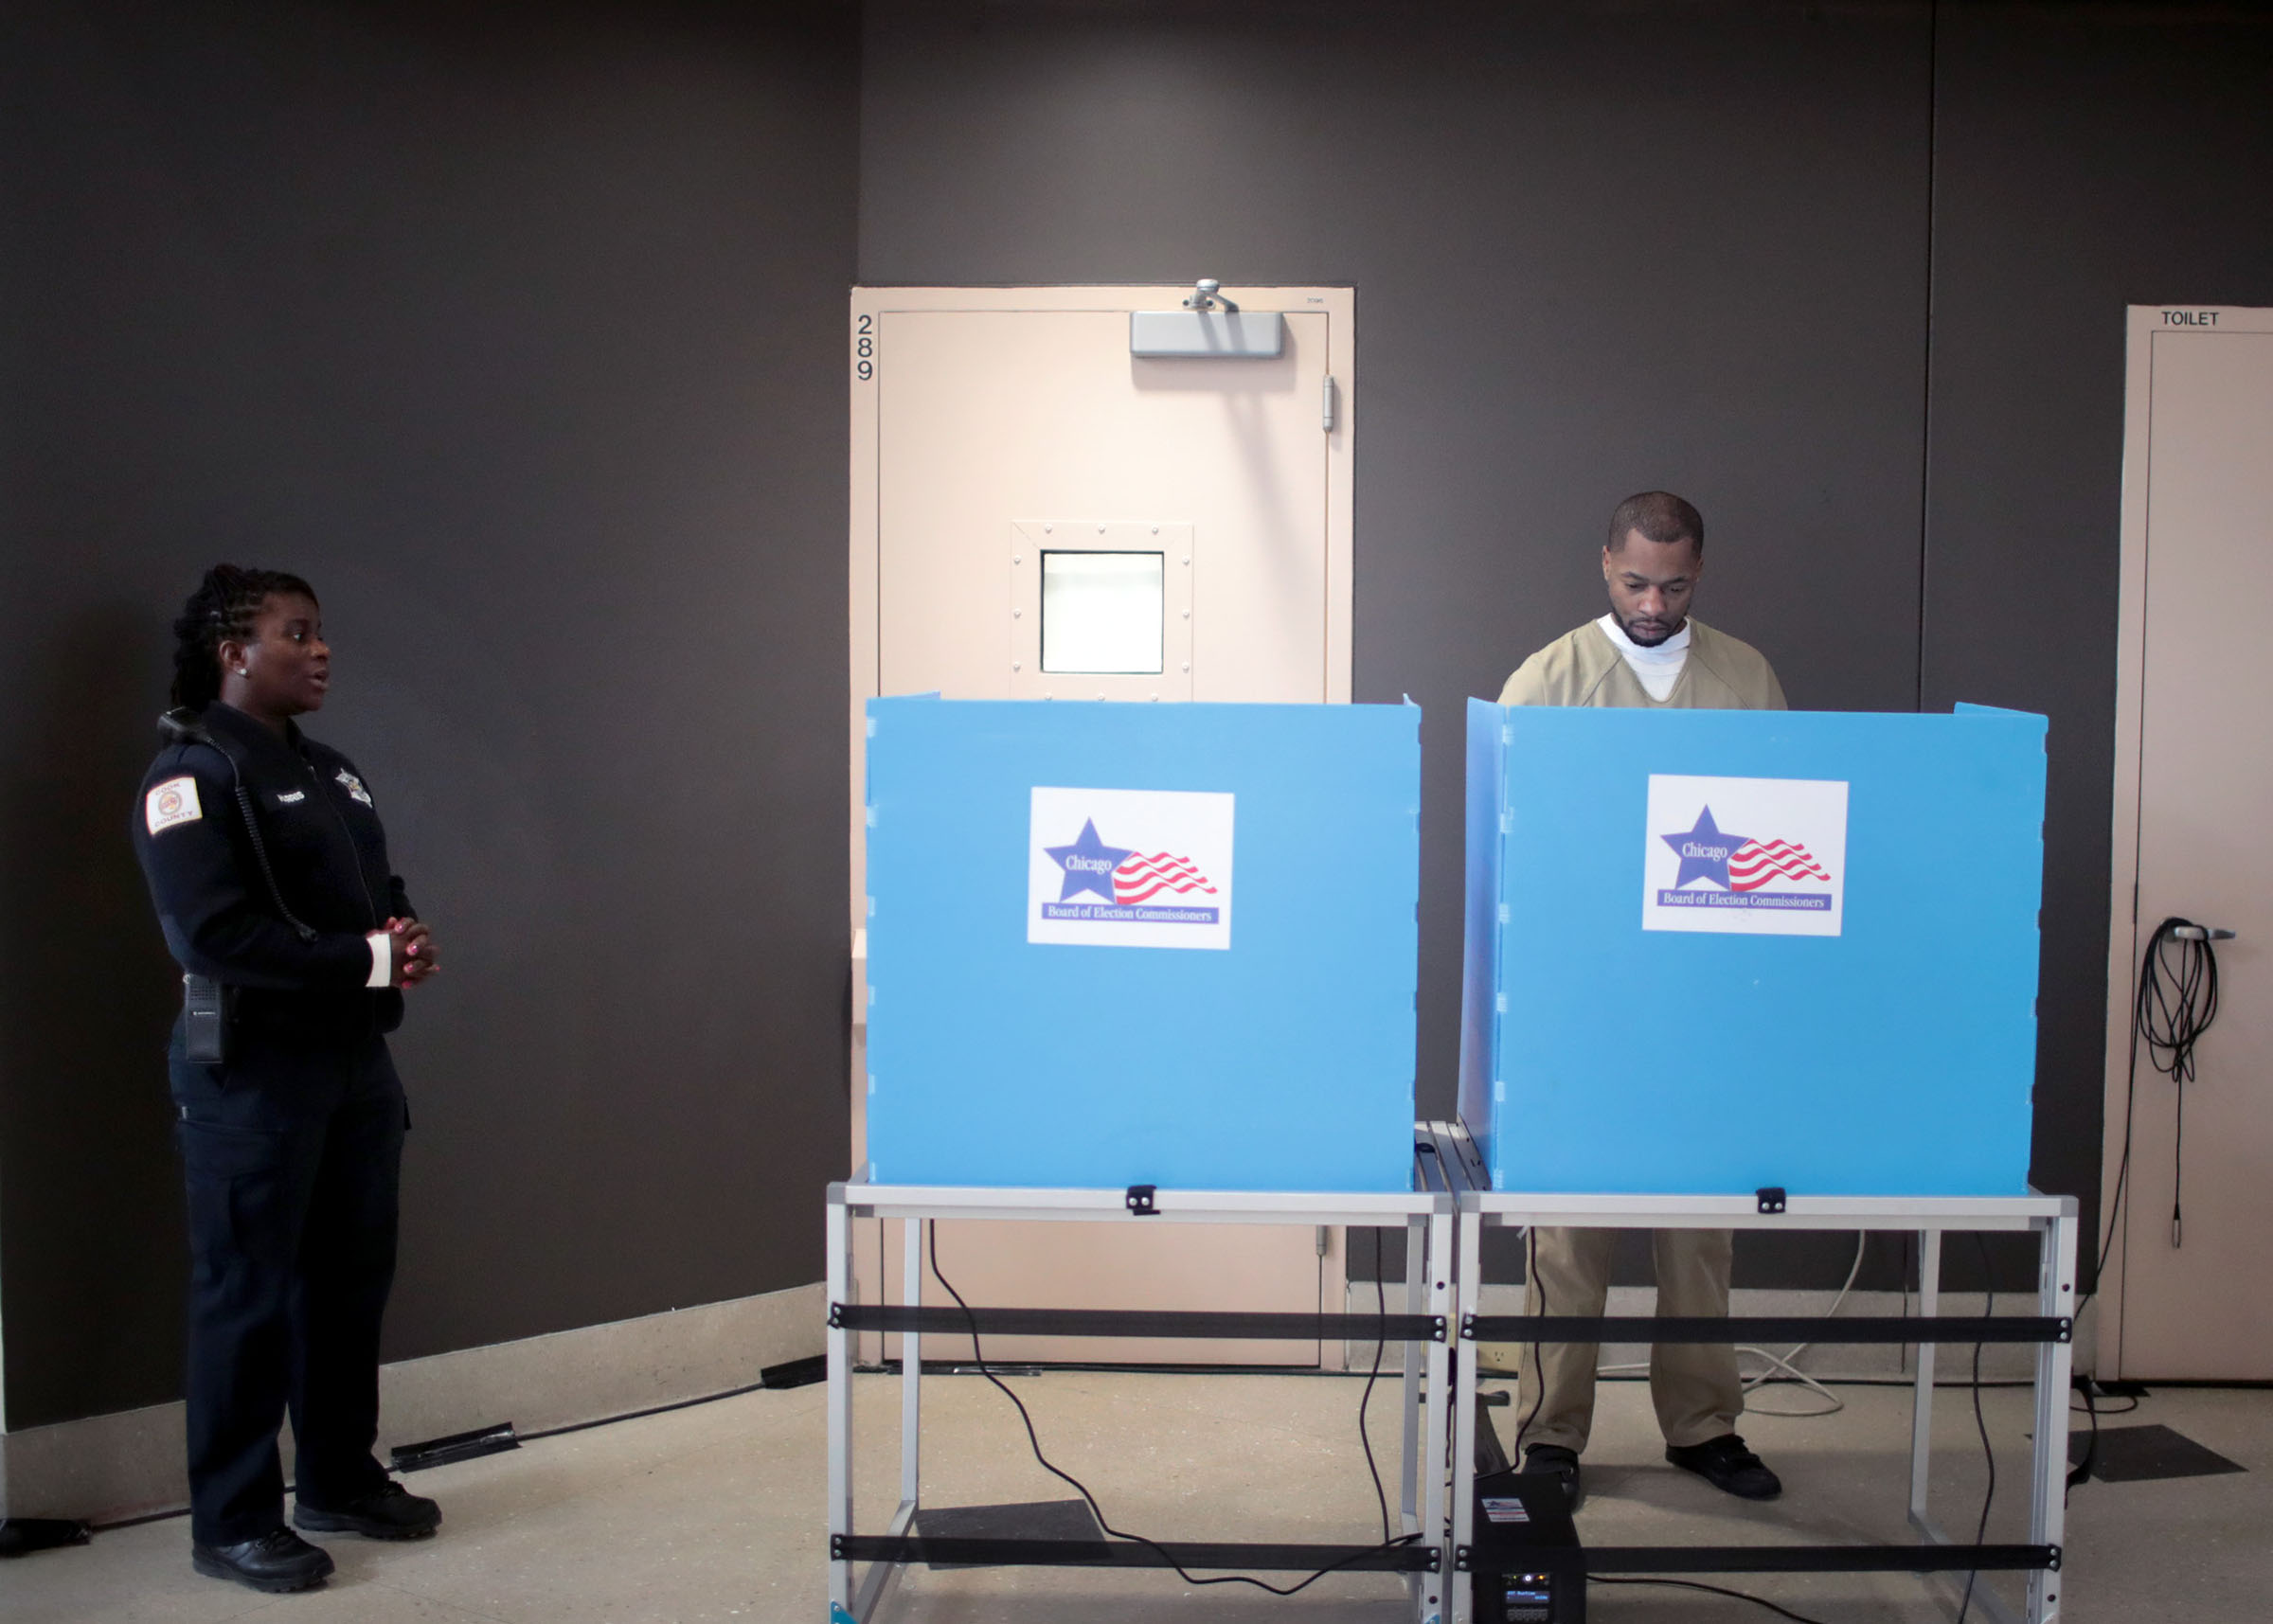 An inmate at the Cook County Jail votes in the Illinois primary election in Chicago on March 7, 2020.